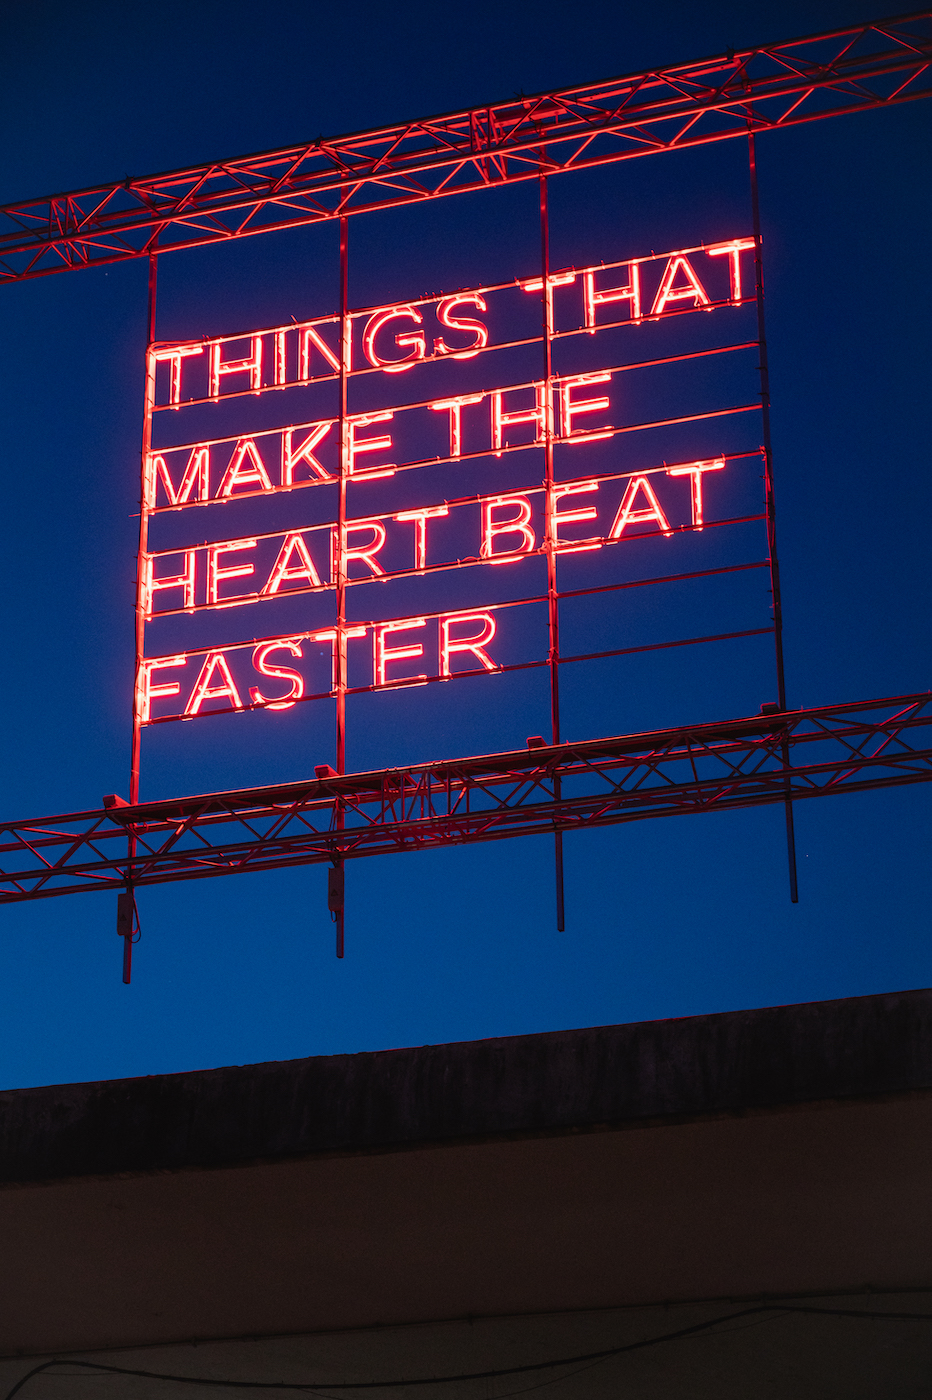 Tim Etchells, THINGS THAT MAKE THE HEART BEAT FASTER, 2021. Installation view. Mattatoio, Rome, IT. Photographer: Andrea Pizzalis.